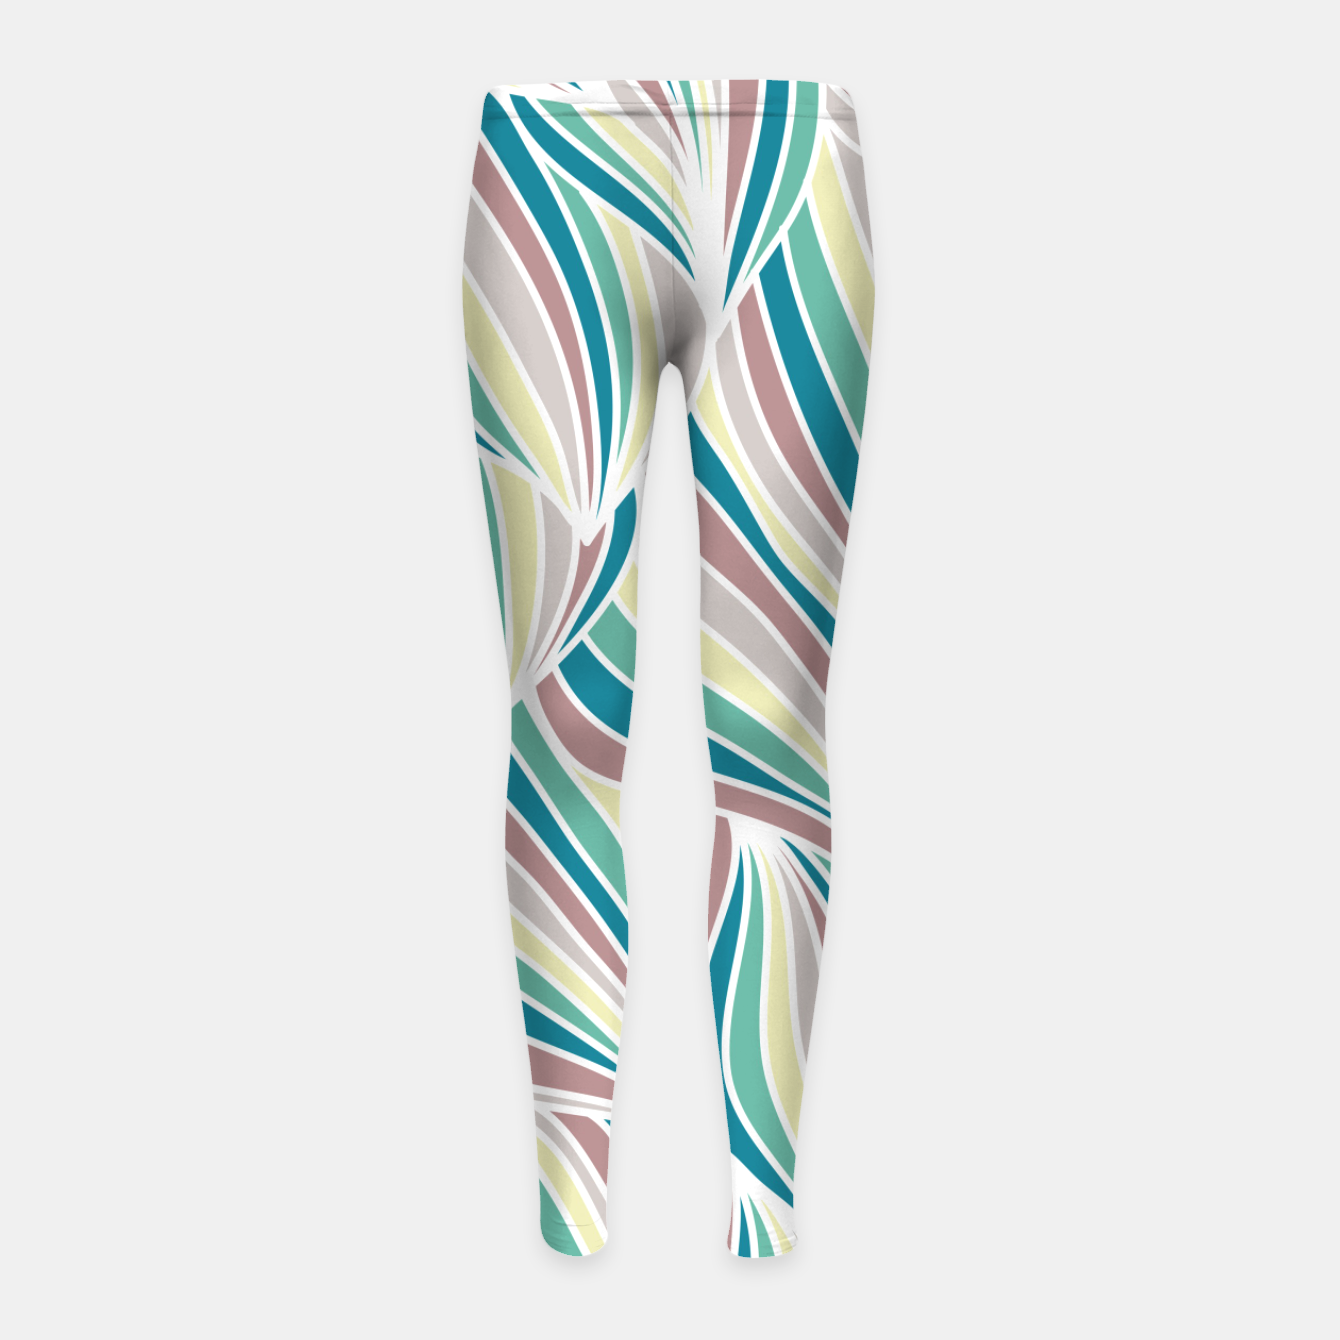 Zdjęcie Colorful Lines Vintage Vibes Pretty Abstract Art Retro Girl's leggings - Live Heroes